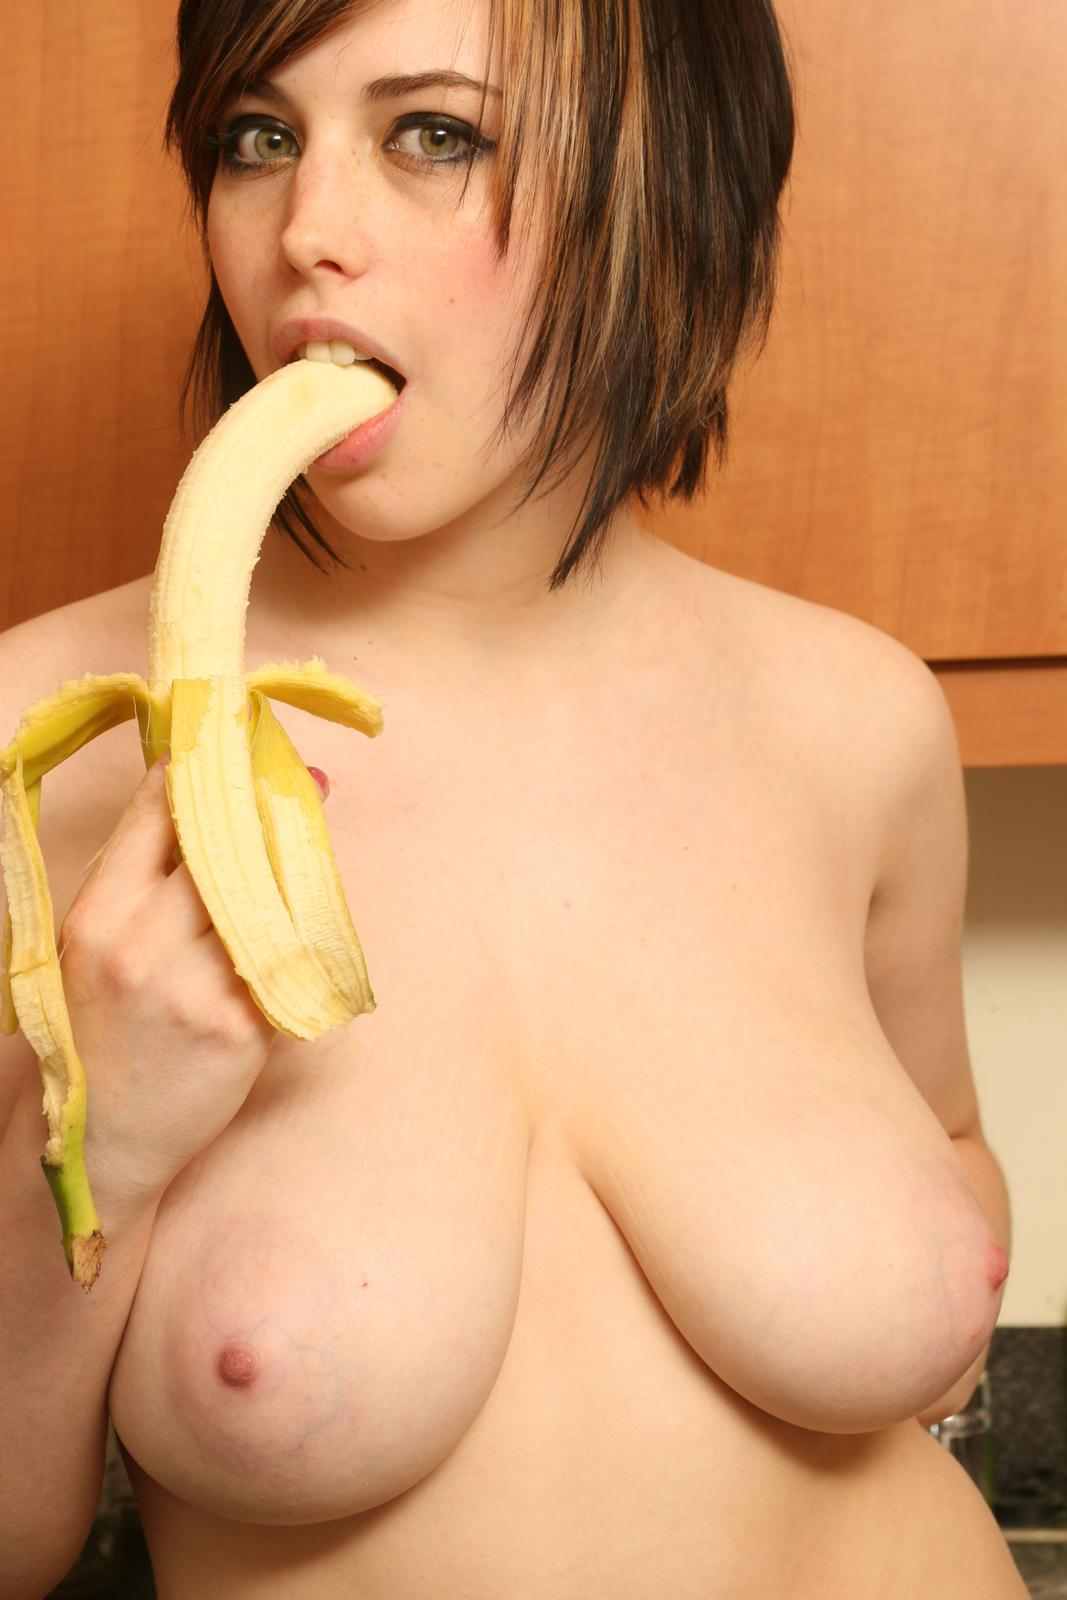 banana-tits-shape-pictures